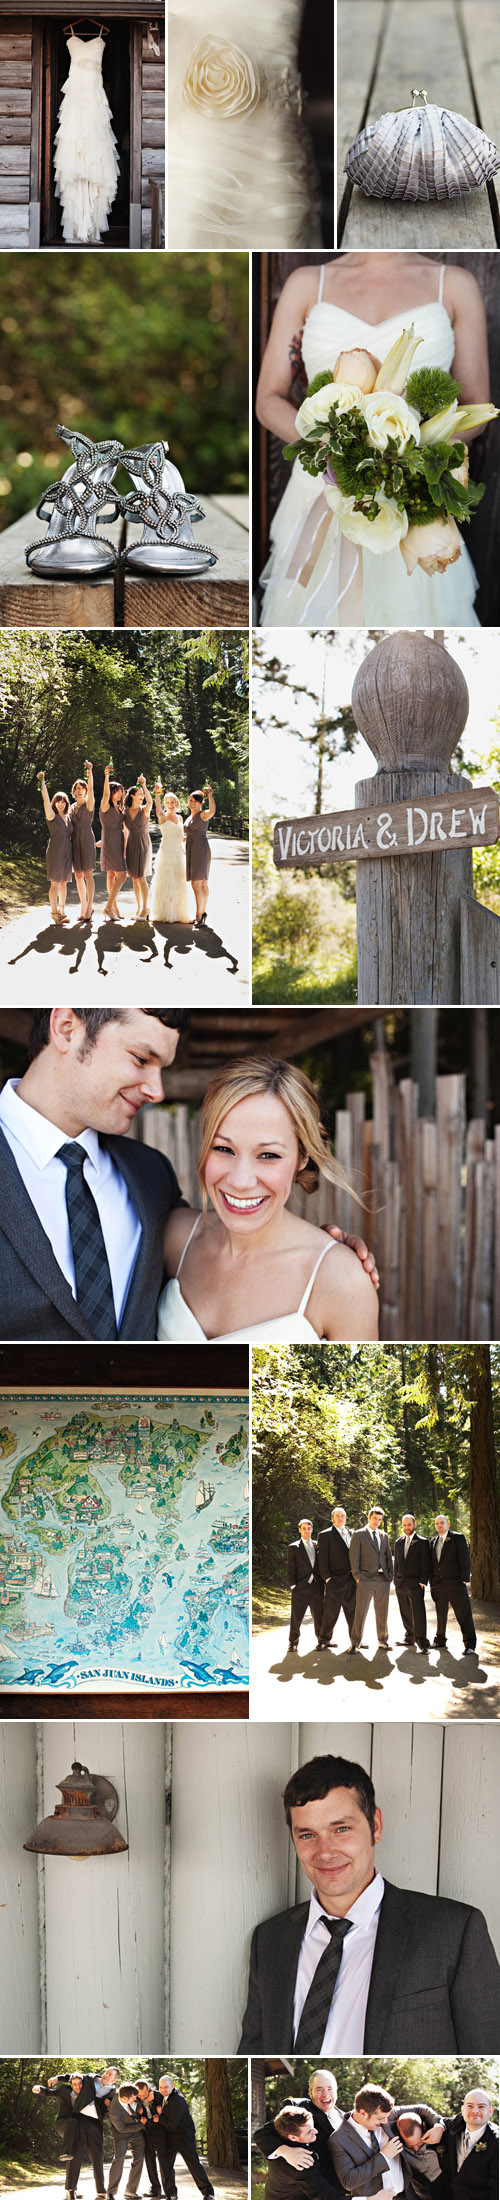 rustic themed, country vintage real wedding, Orcas Island, Washington, image by Jenny J